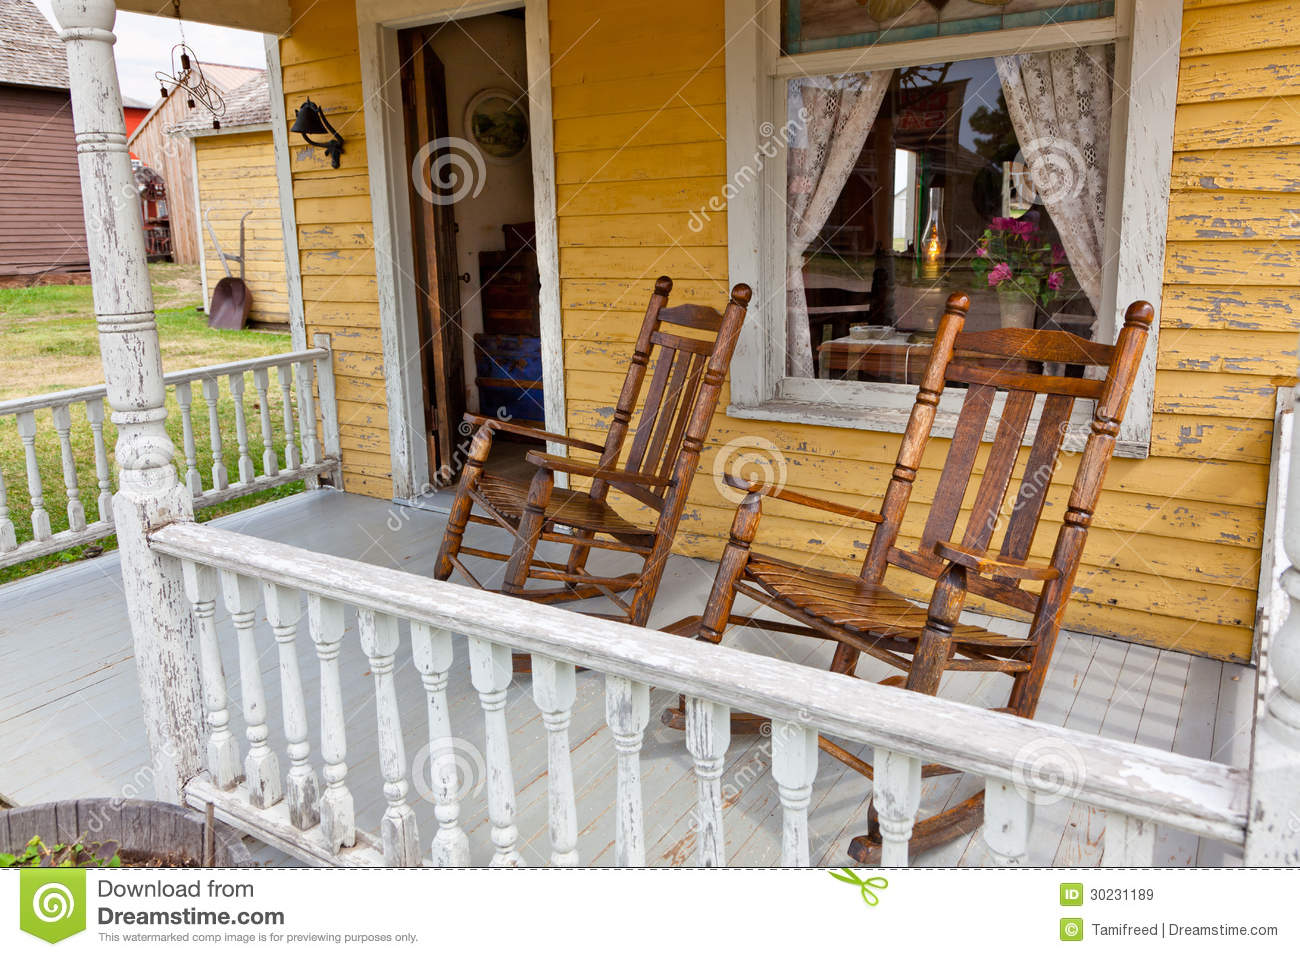 building a rocking chair wicker outdoor old chairs on porch royalty free stock images - image: 30231189